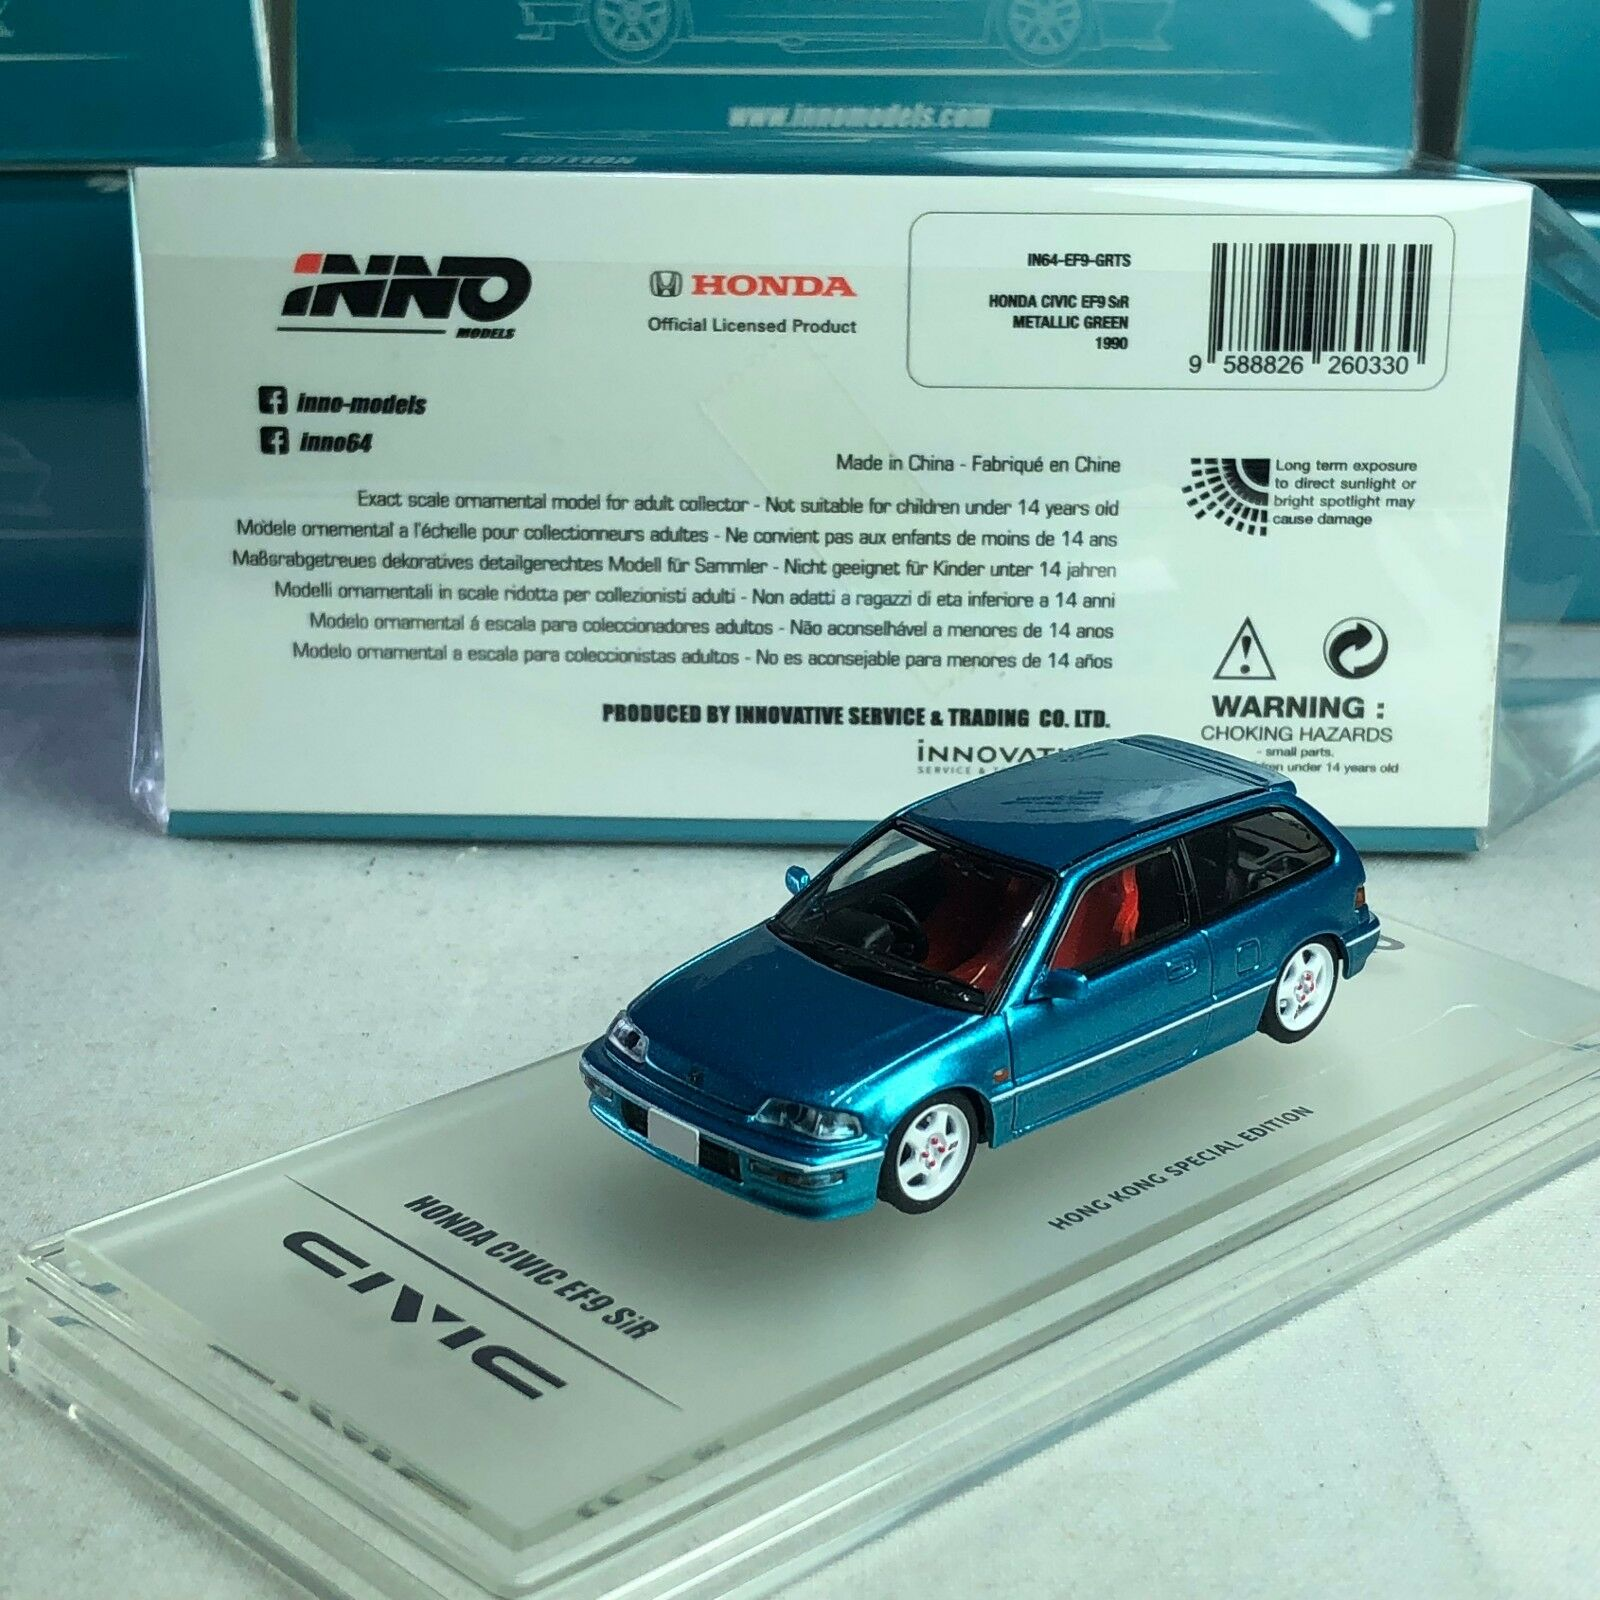 1 64 INNO64 Honda Civic EF9 SiR Grün Met Edition special for TINY available